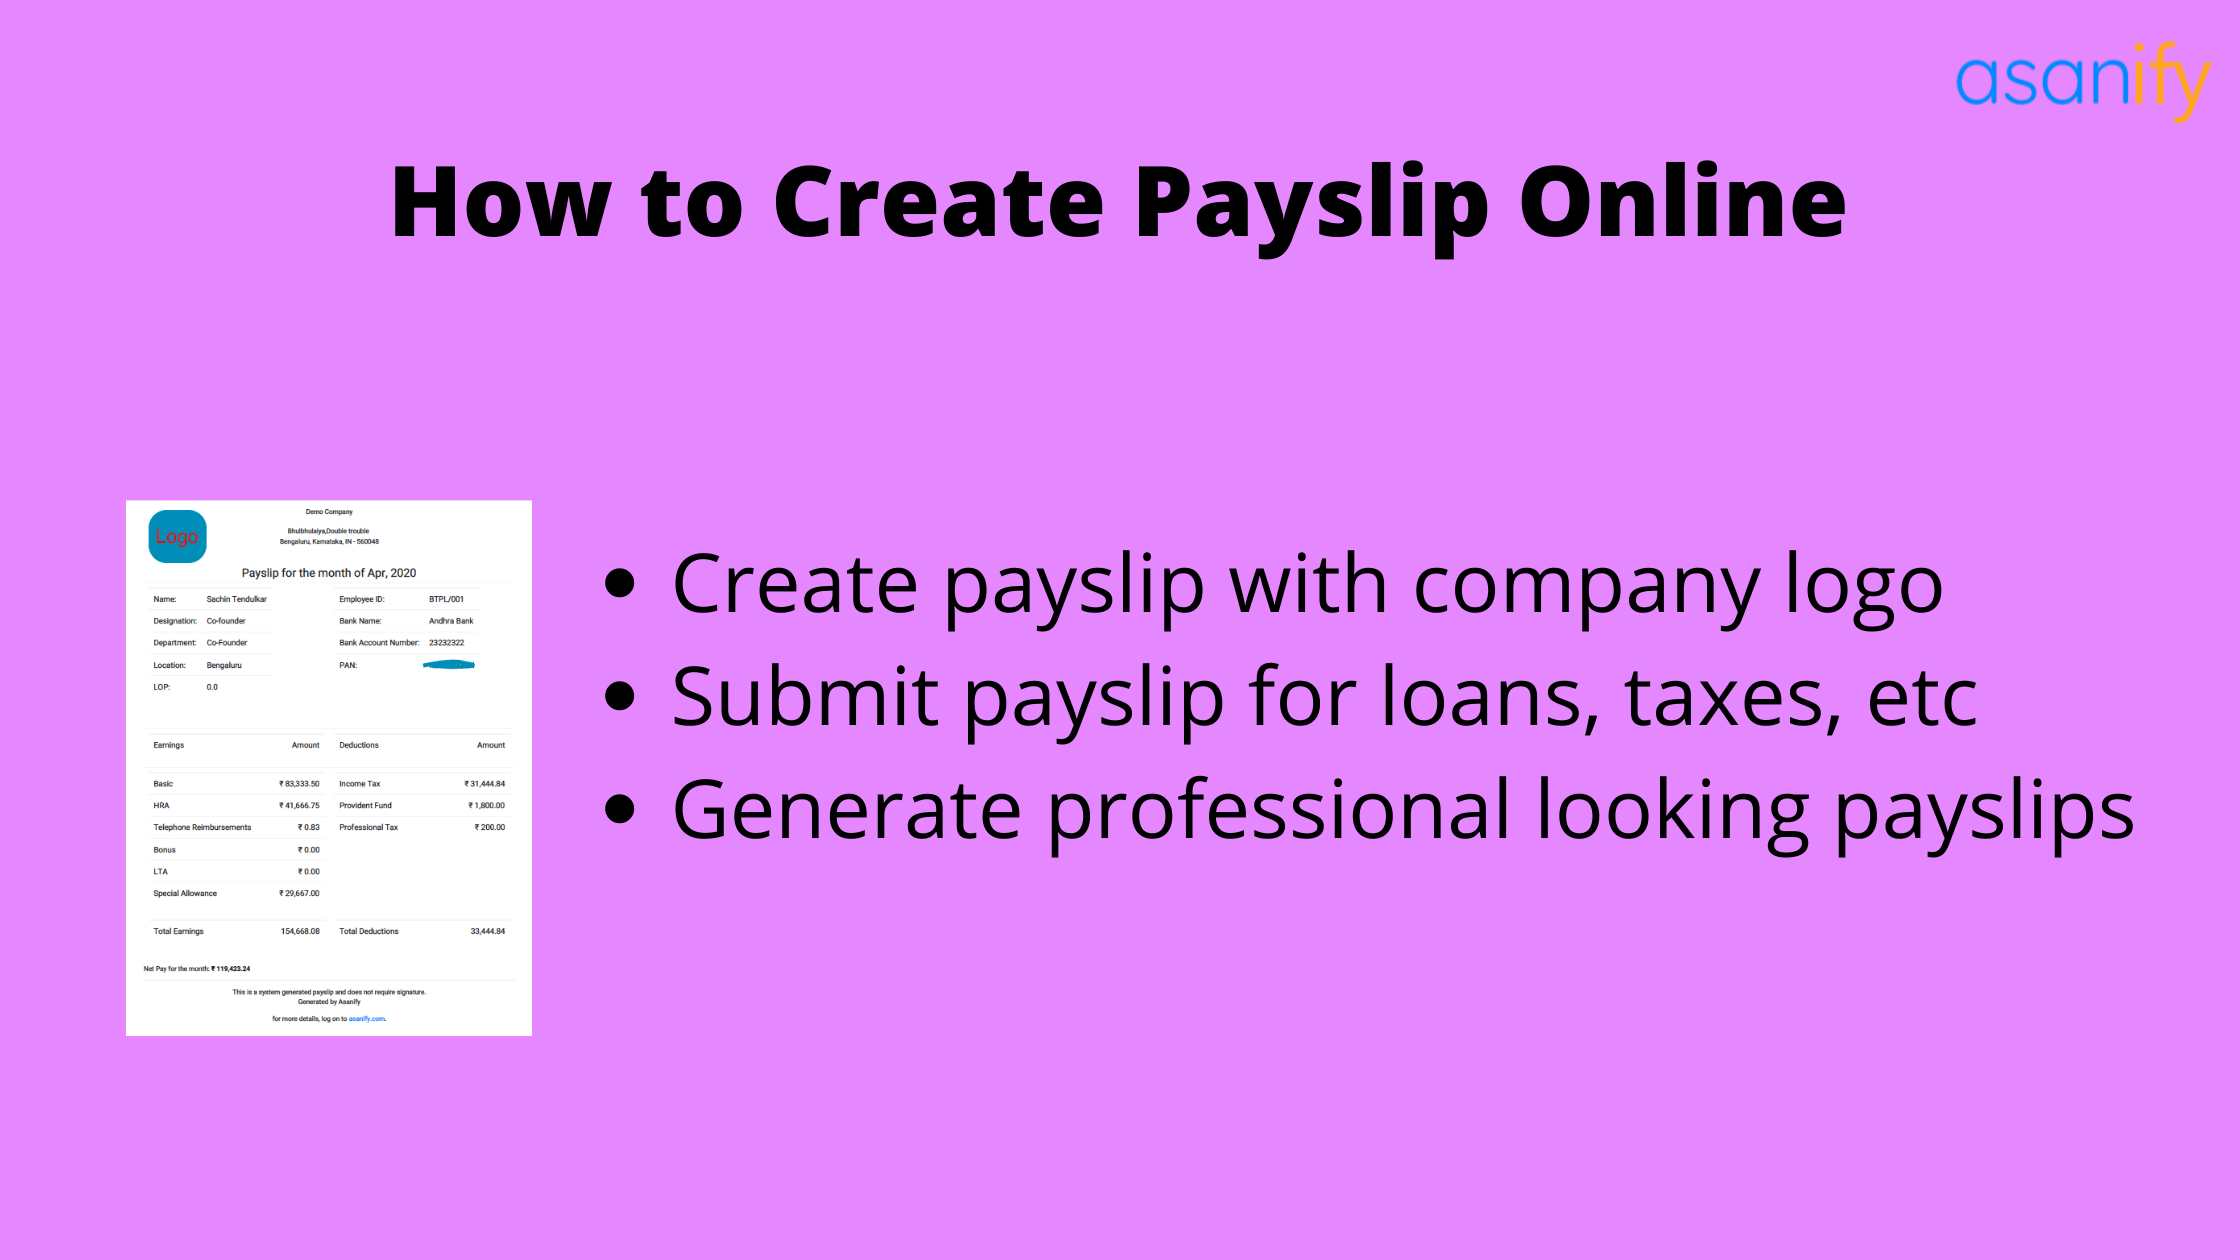 Online Payslip generator: How to Create Payslip Online